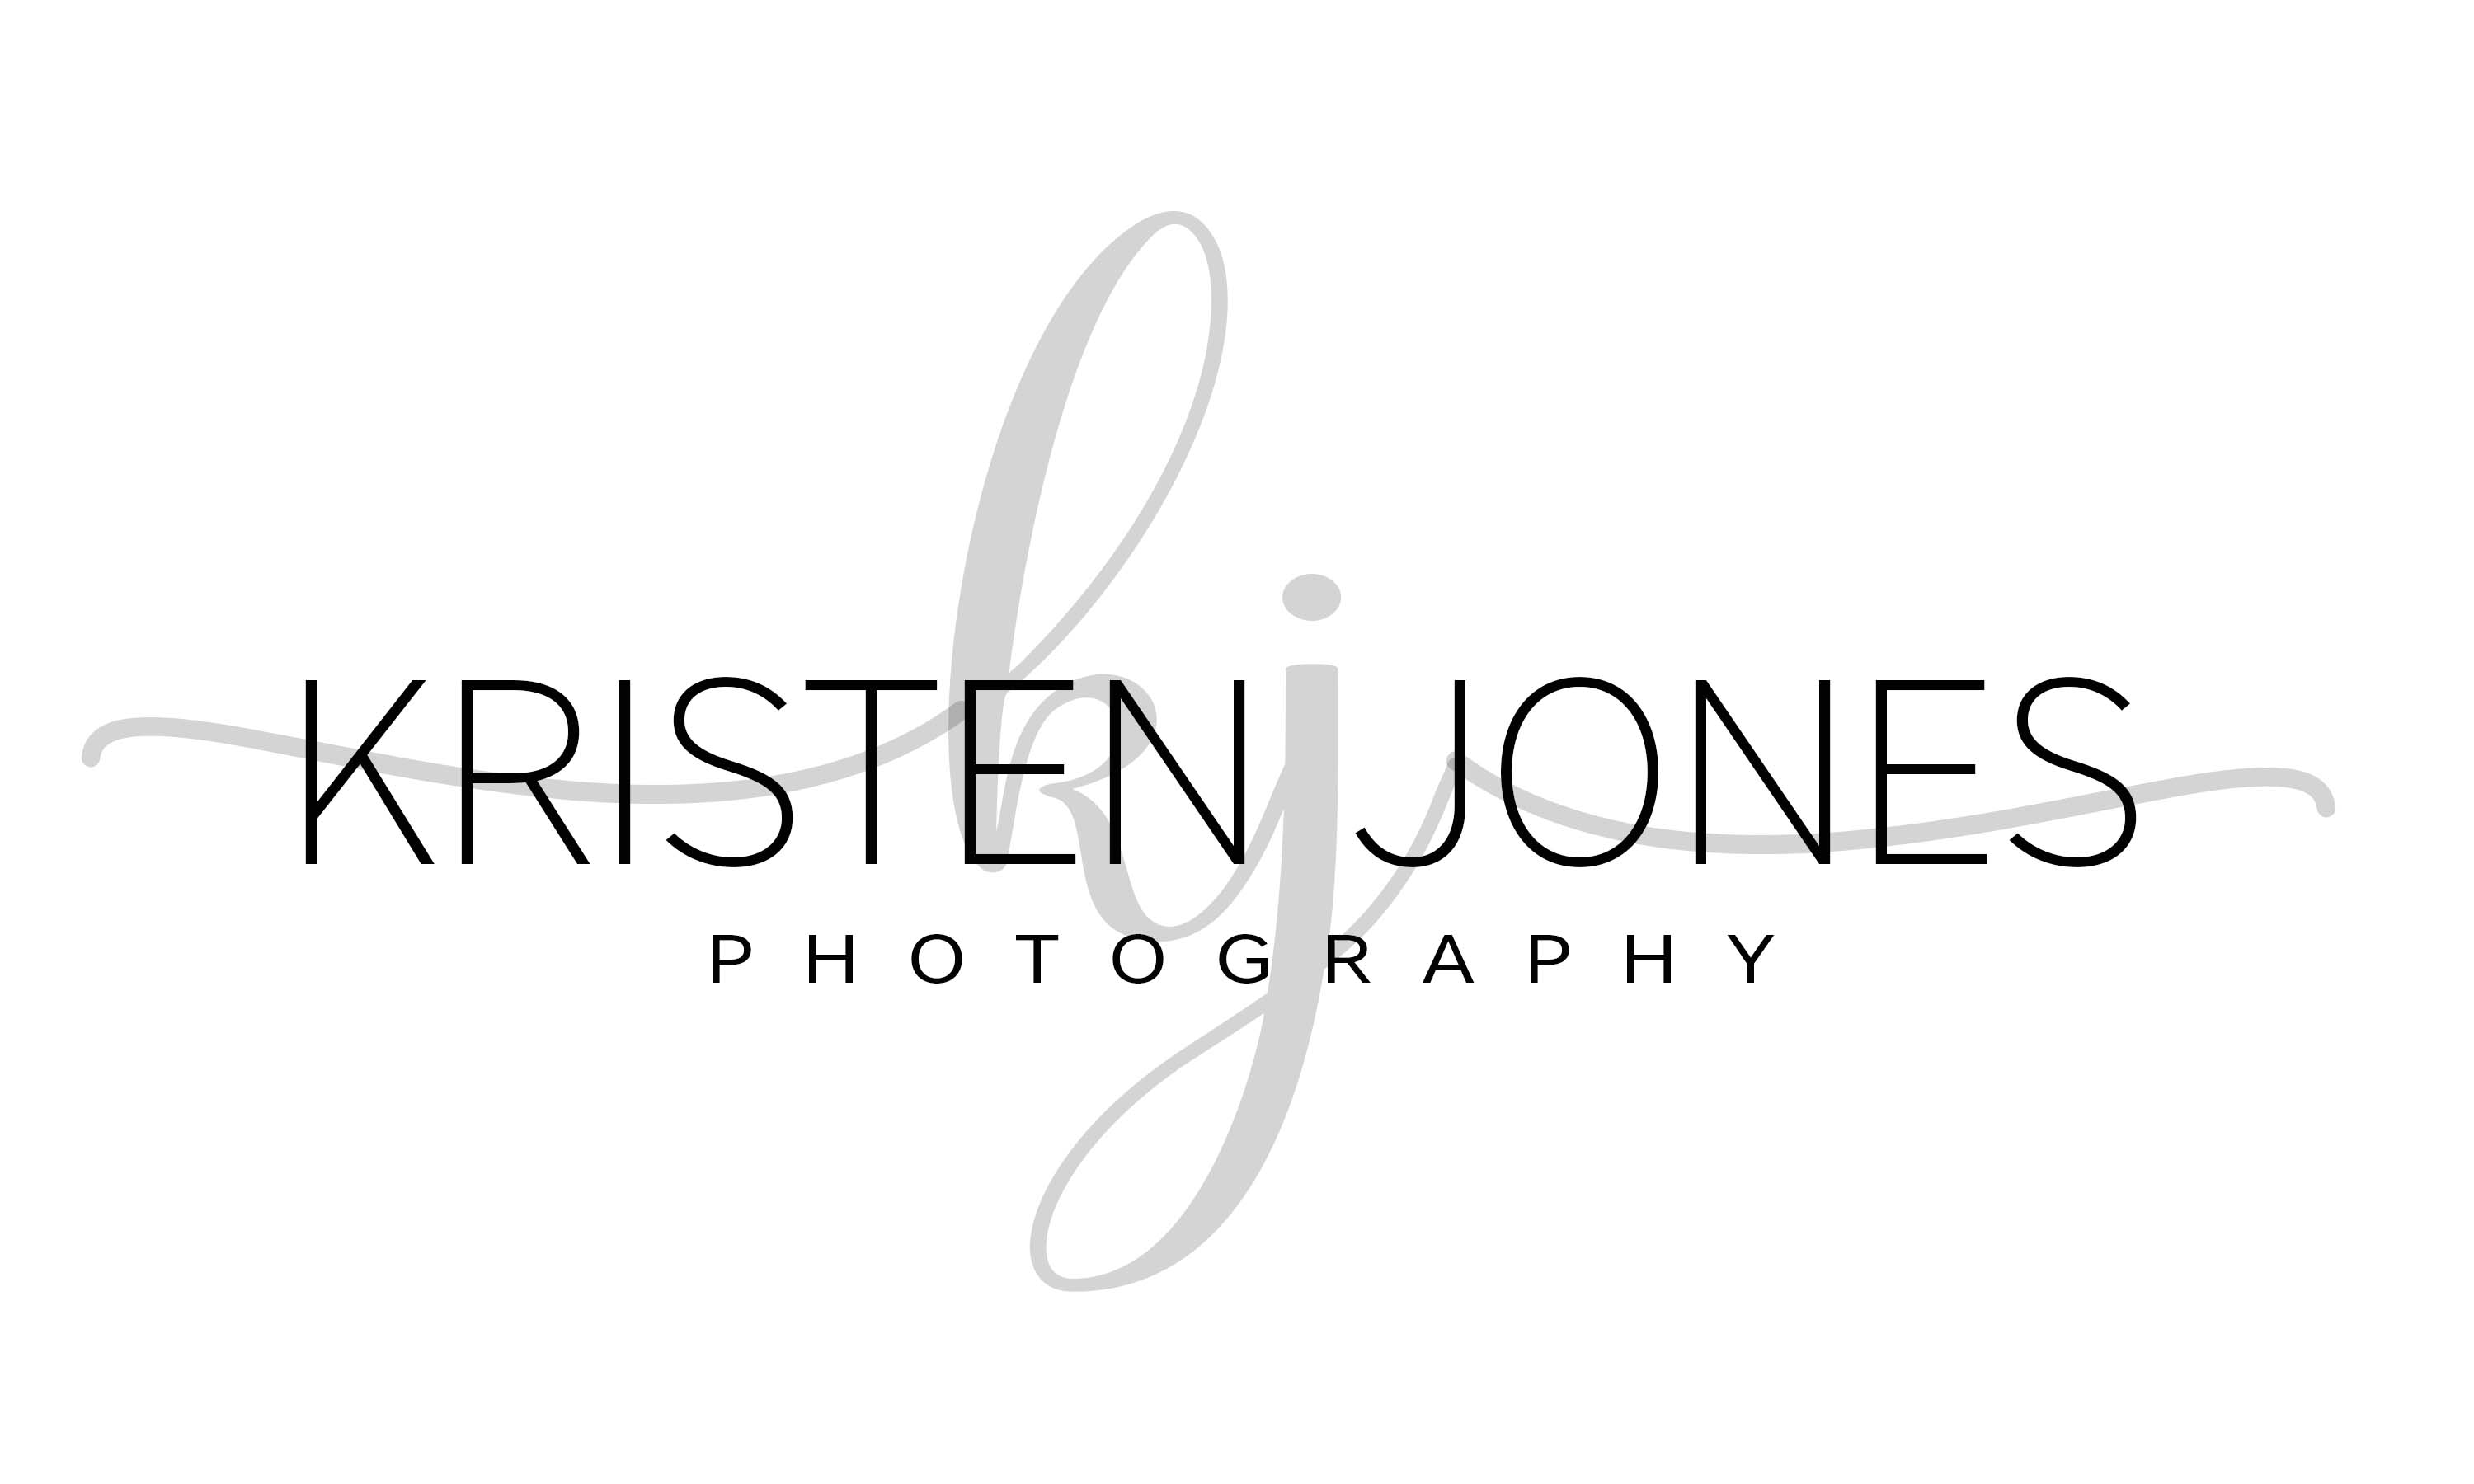 Kristen Jones Photography